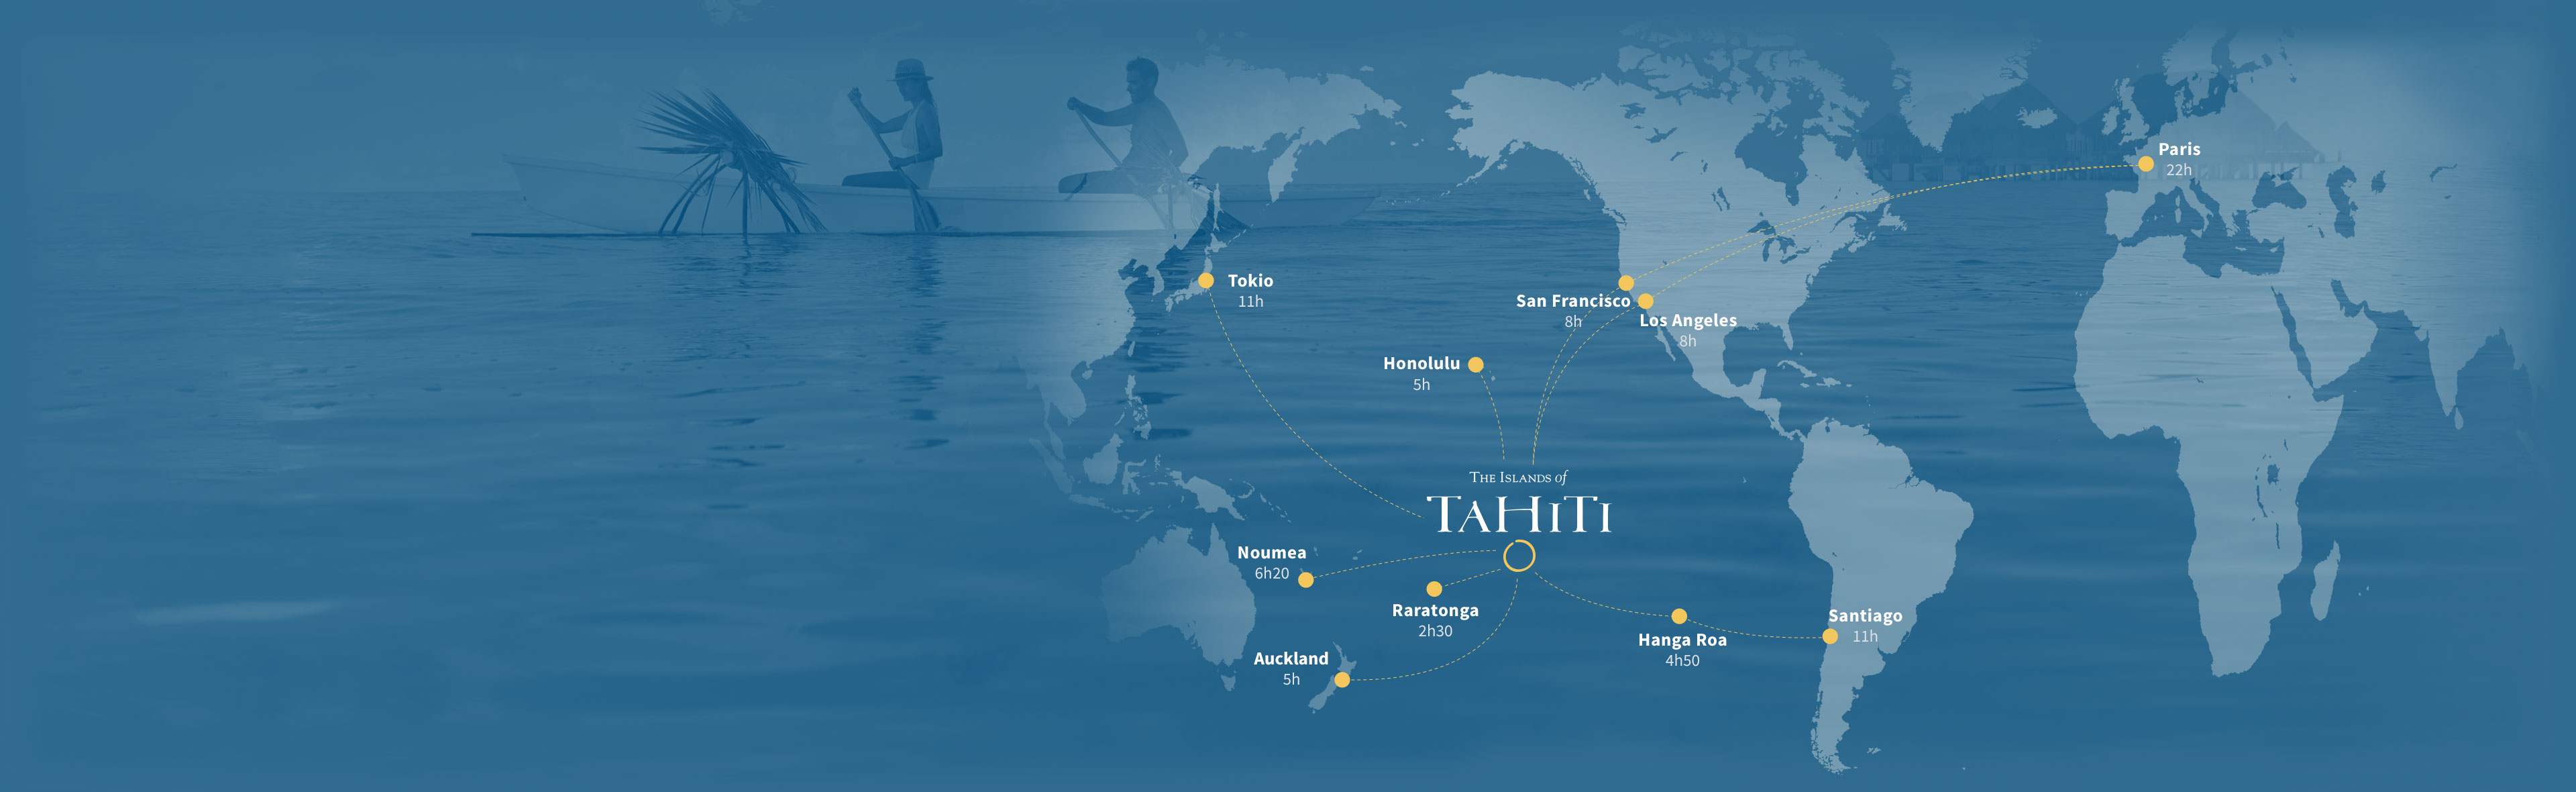 tahiti-homepage-map-d_german | Tahiti Tourisme on map of hawaii, map of south pacific, map of spain, map of fiji, map of thailand, map of french polynesia, map of seychelles, map of costa rica, map of switzerland, map of bahamas, map of bali, map of brazil, map of moorea, map of carribean, map of pacific ocean, map of austrailia, map of kwajalein, map of bora bora, map of malaysia, map of new zealand,